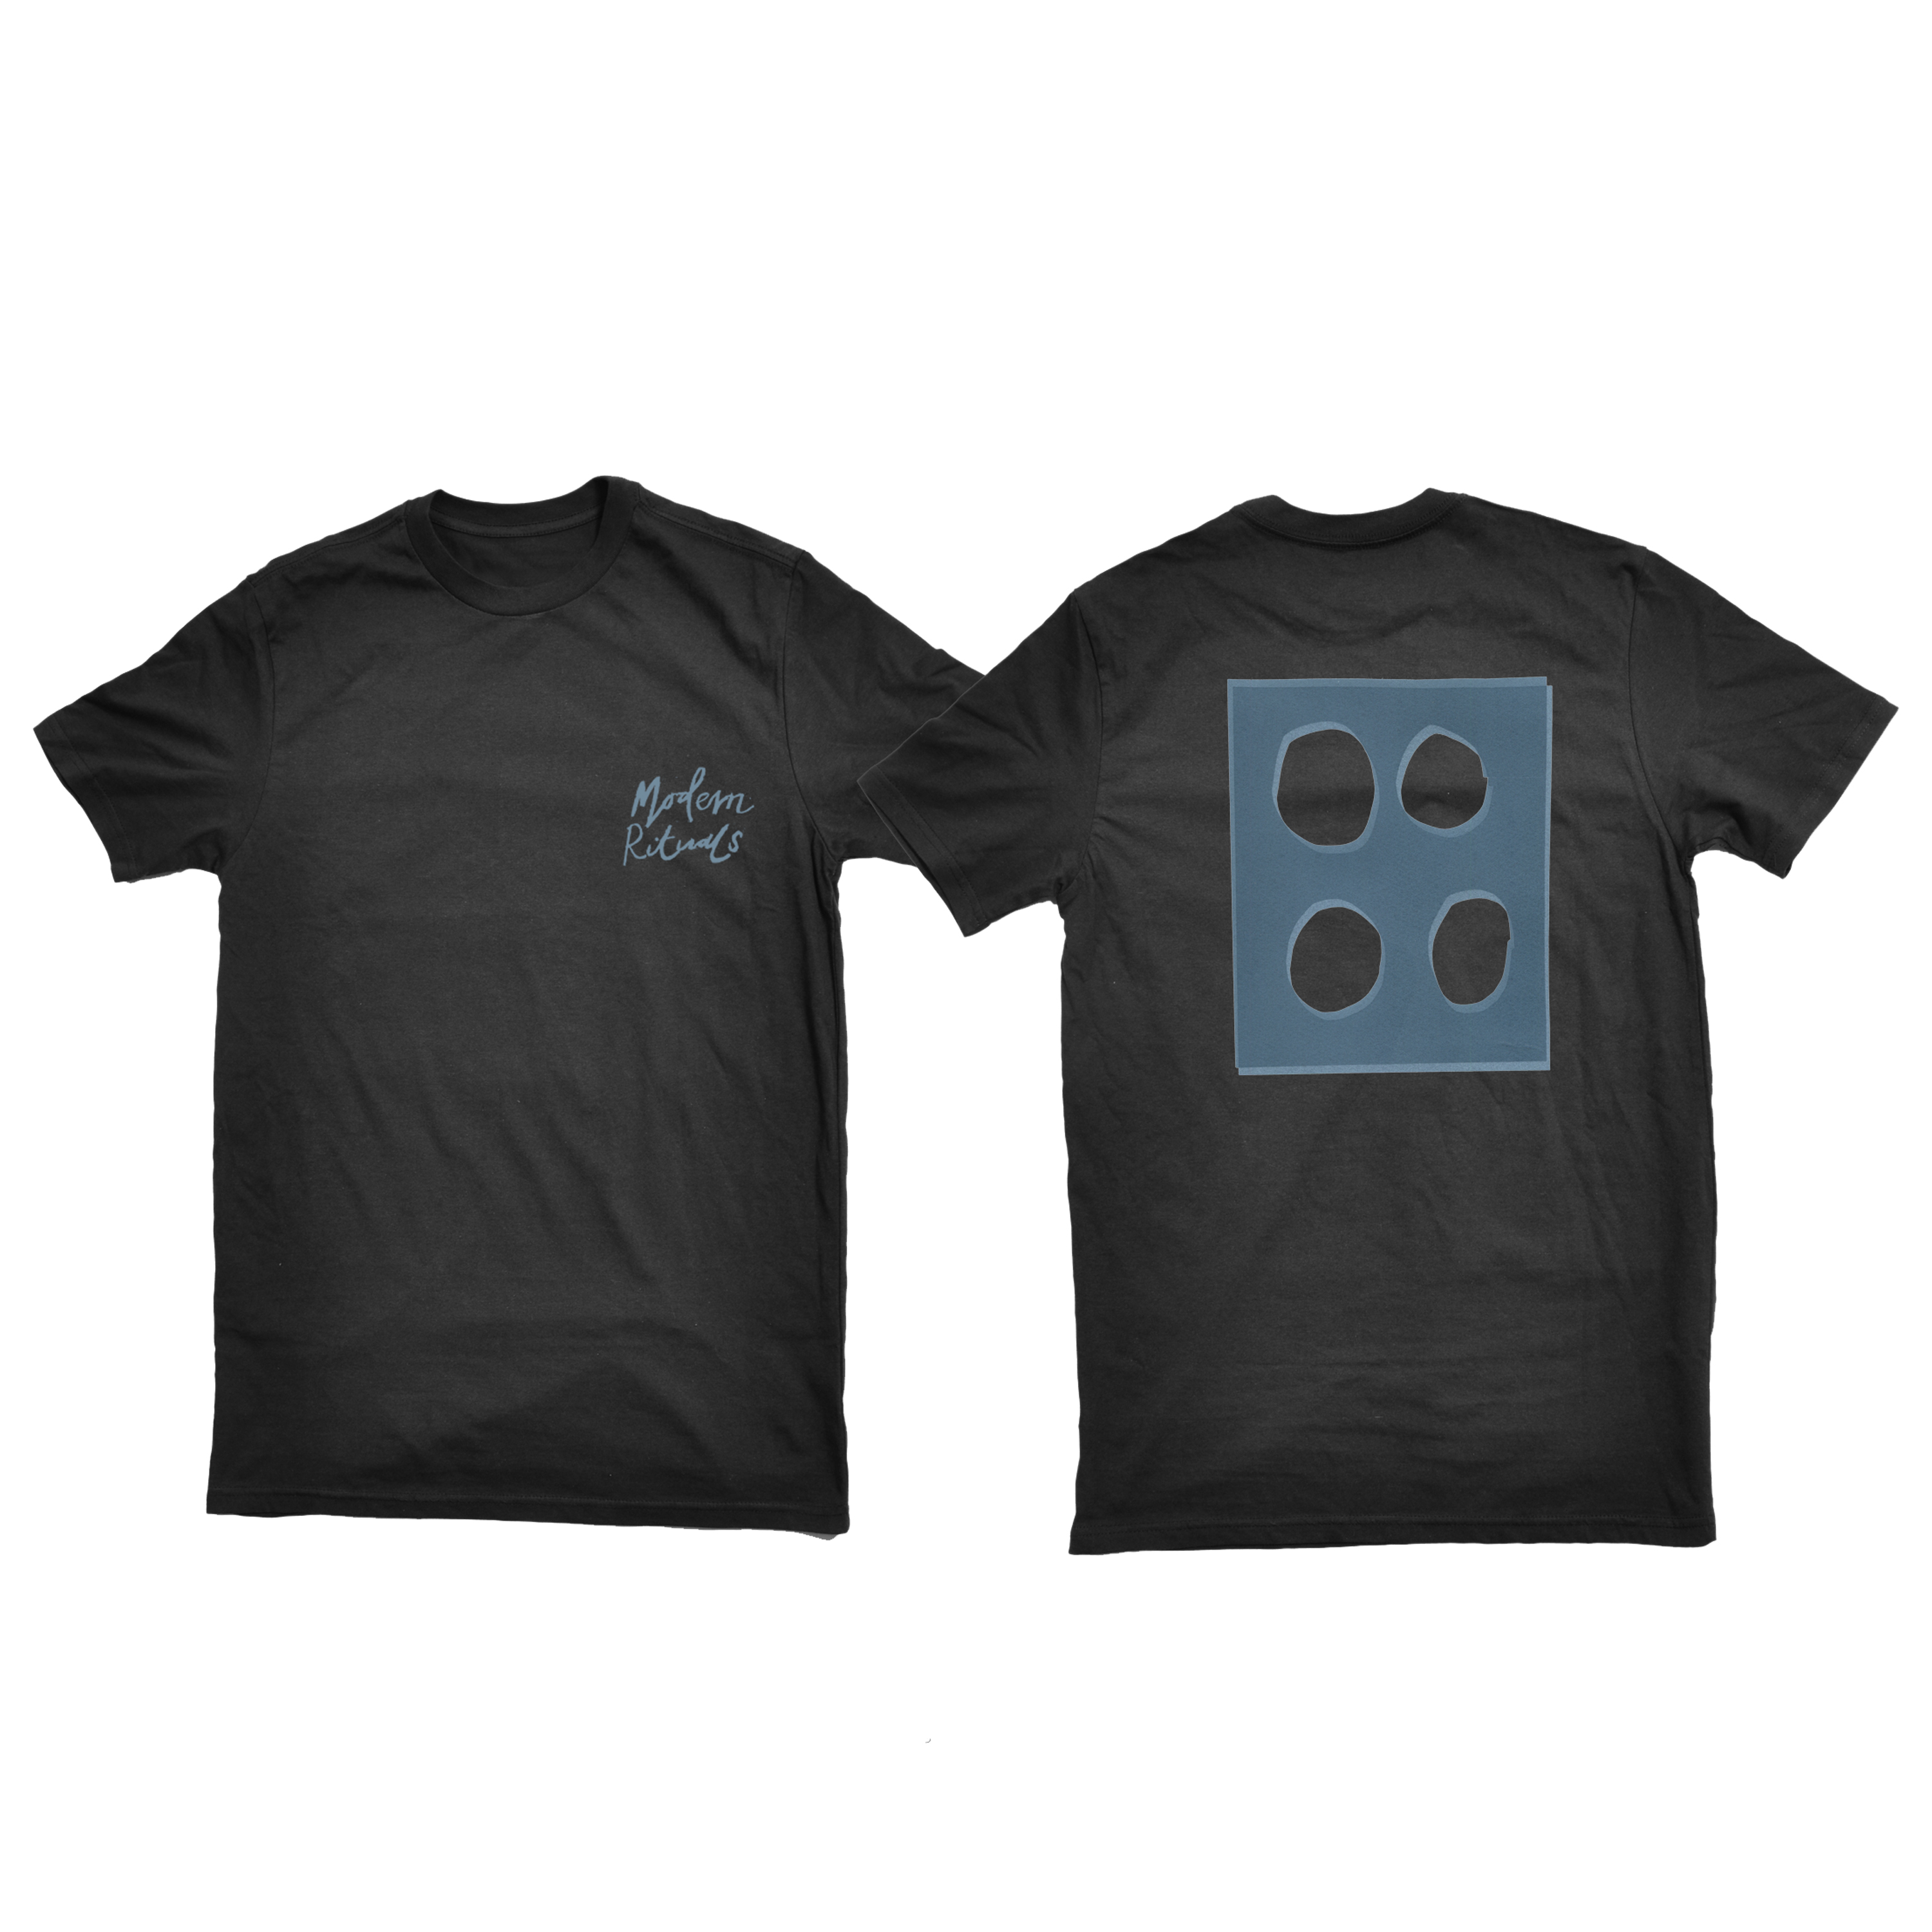 Modern Rituals - This Is The History shirt PREORDER